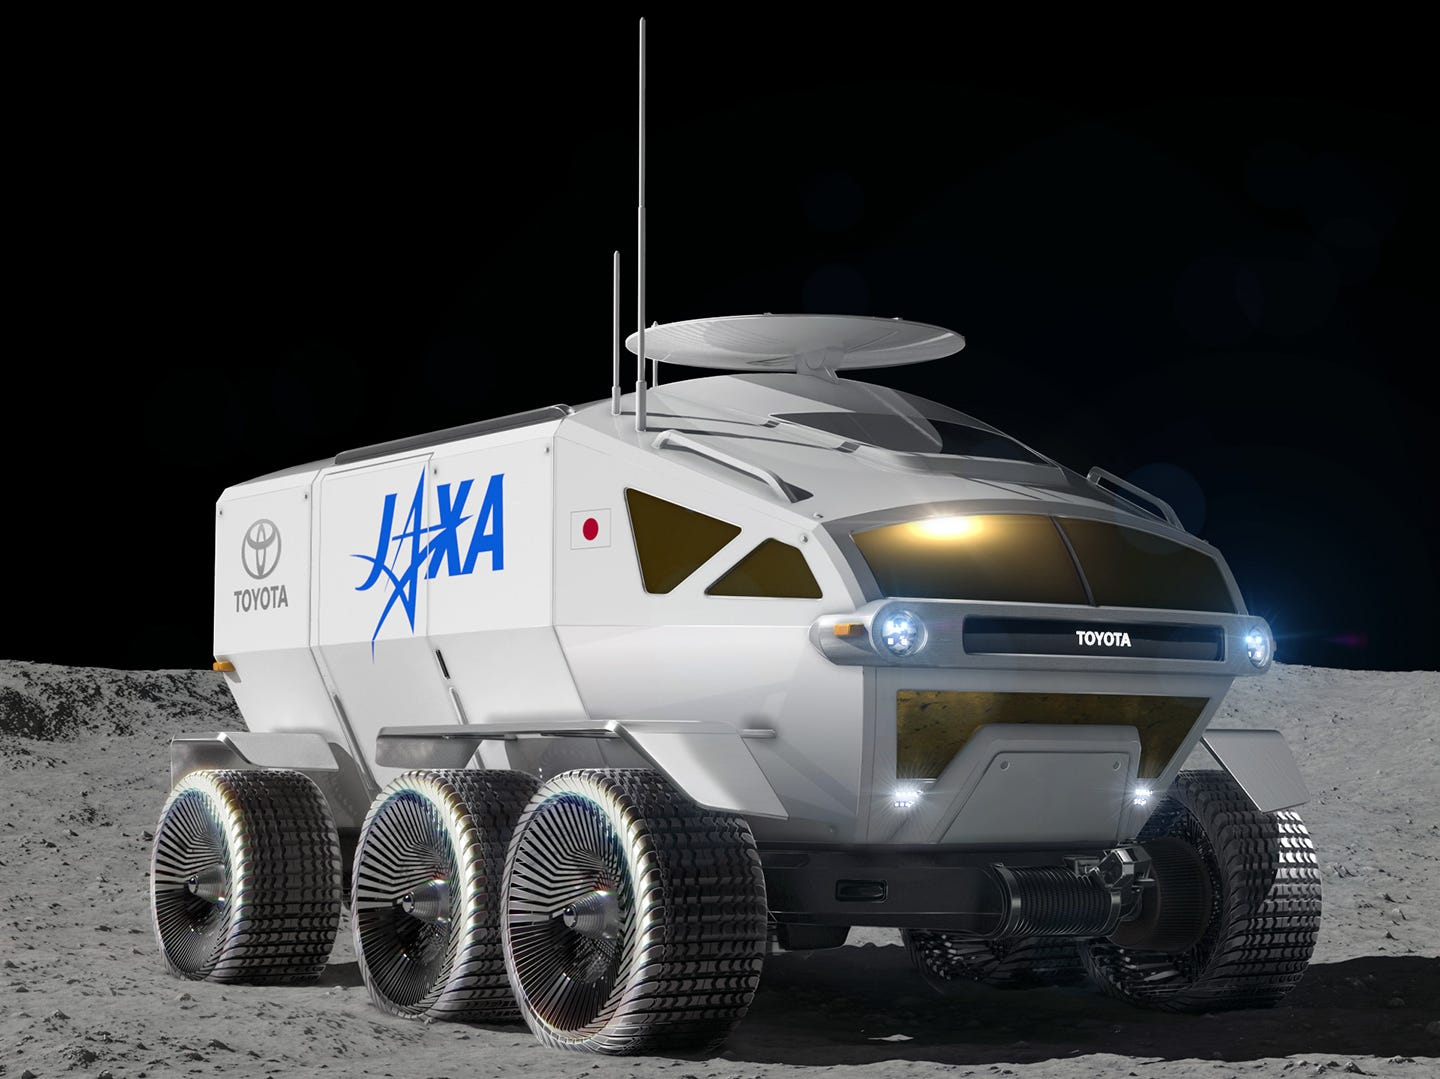 The Japan Aerospace Exploration Agency (JAXA) and Toyota Motor Corp.  announced an agreement in March to consider the possibility of collaborating on international space exploration.